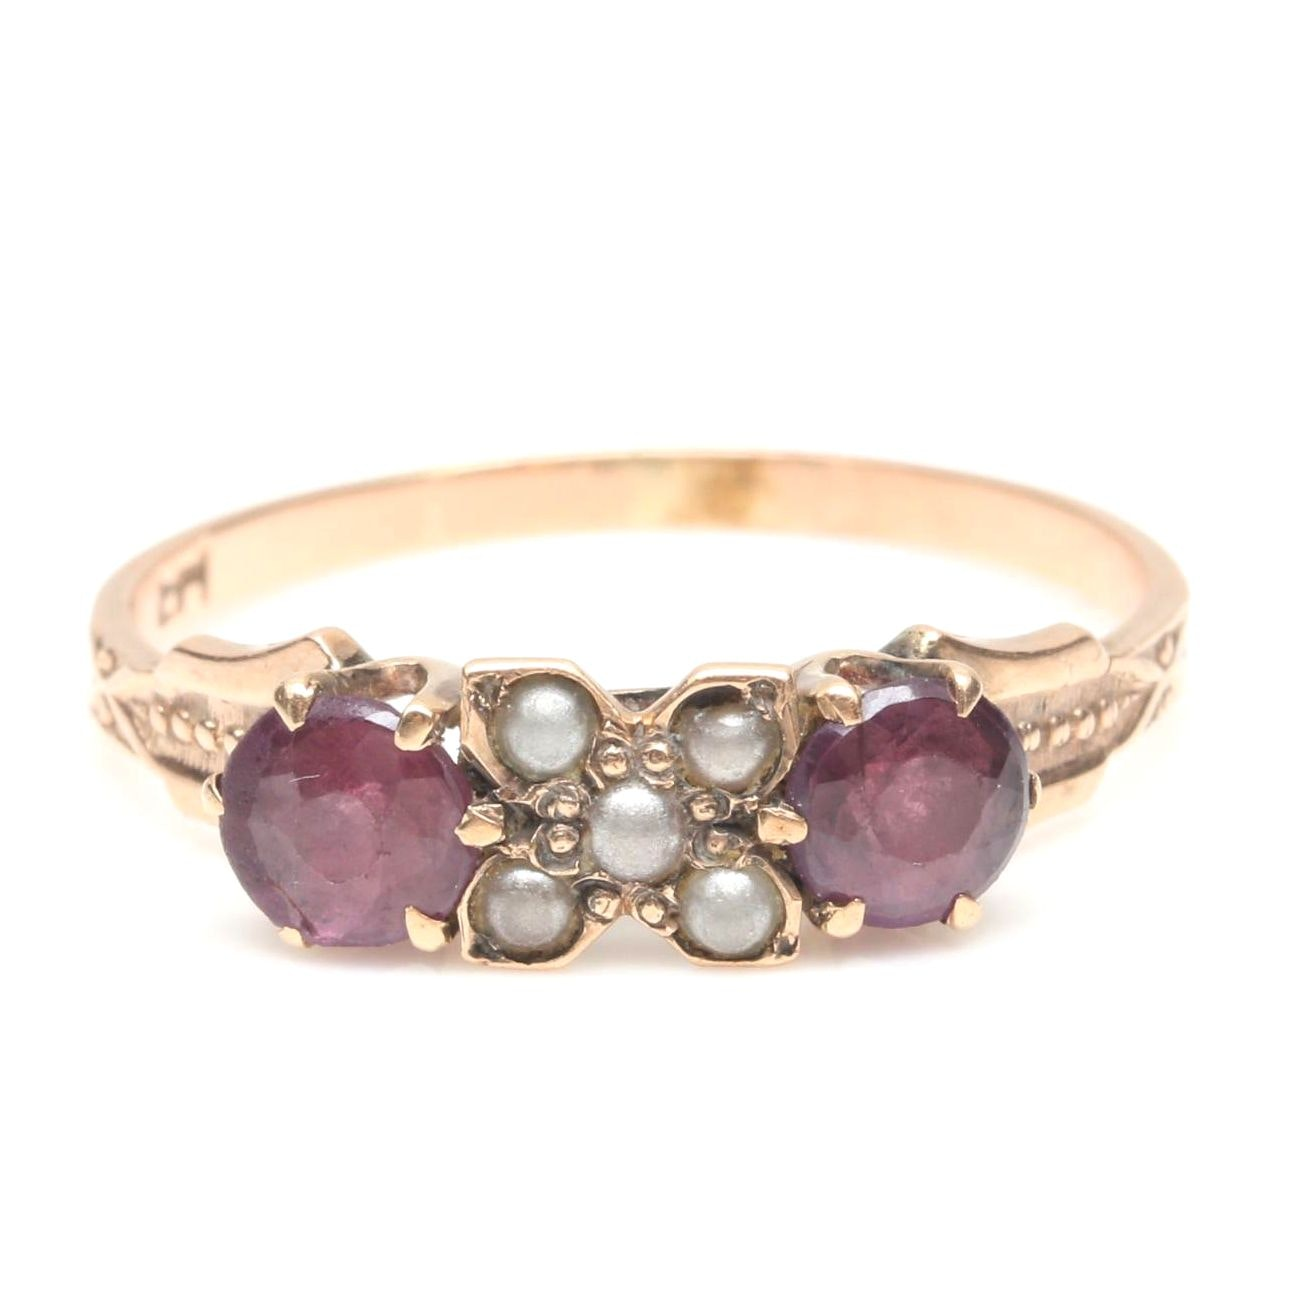 10K Rose Gold Garnet and Glass Doublet and Imitation Pearl Ring